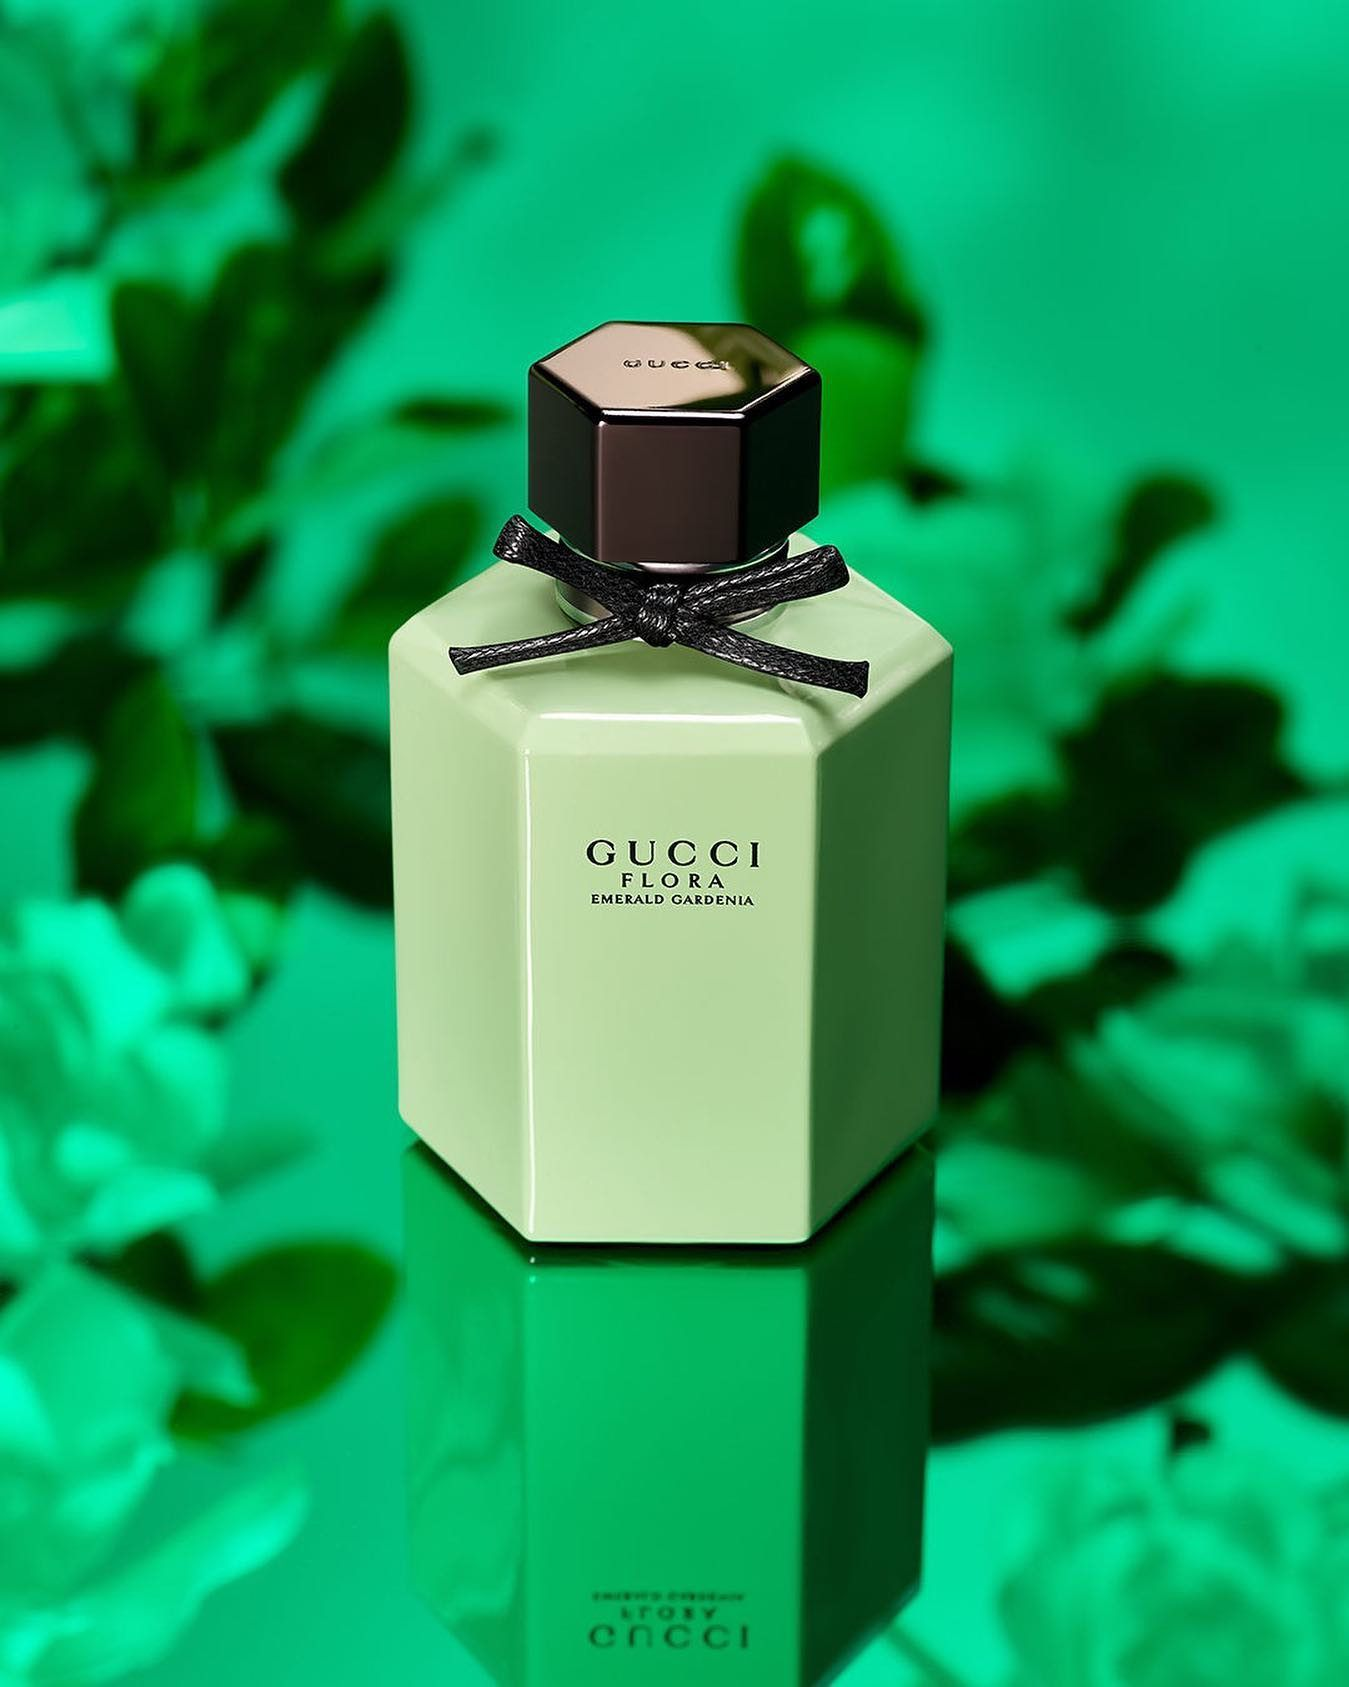 Gucci Flora Emerald Gardenia Eau De Toilette With Images